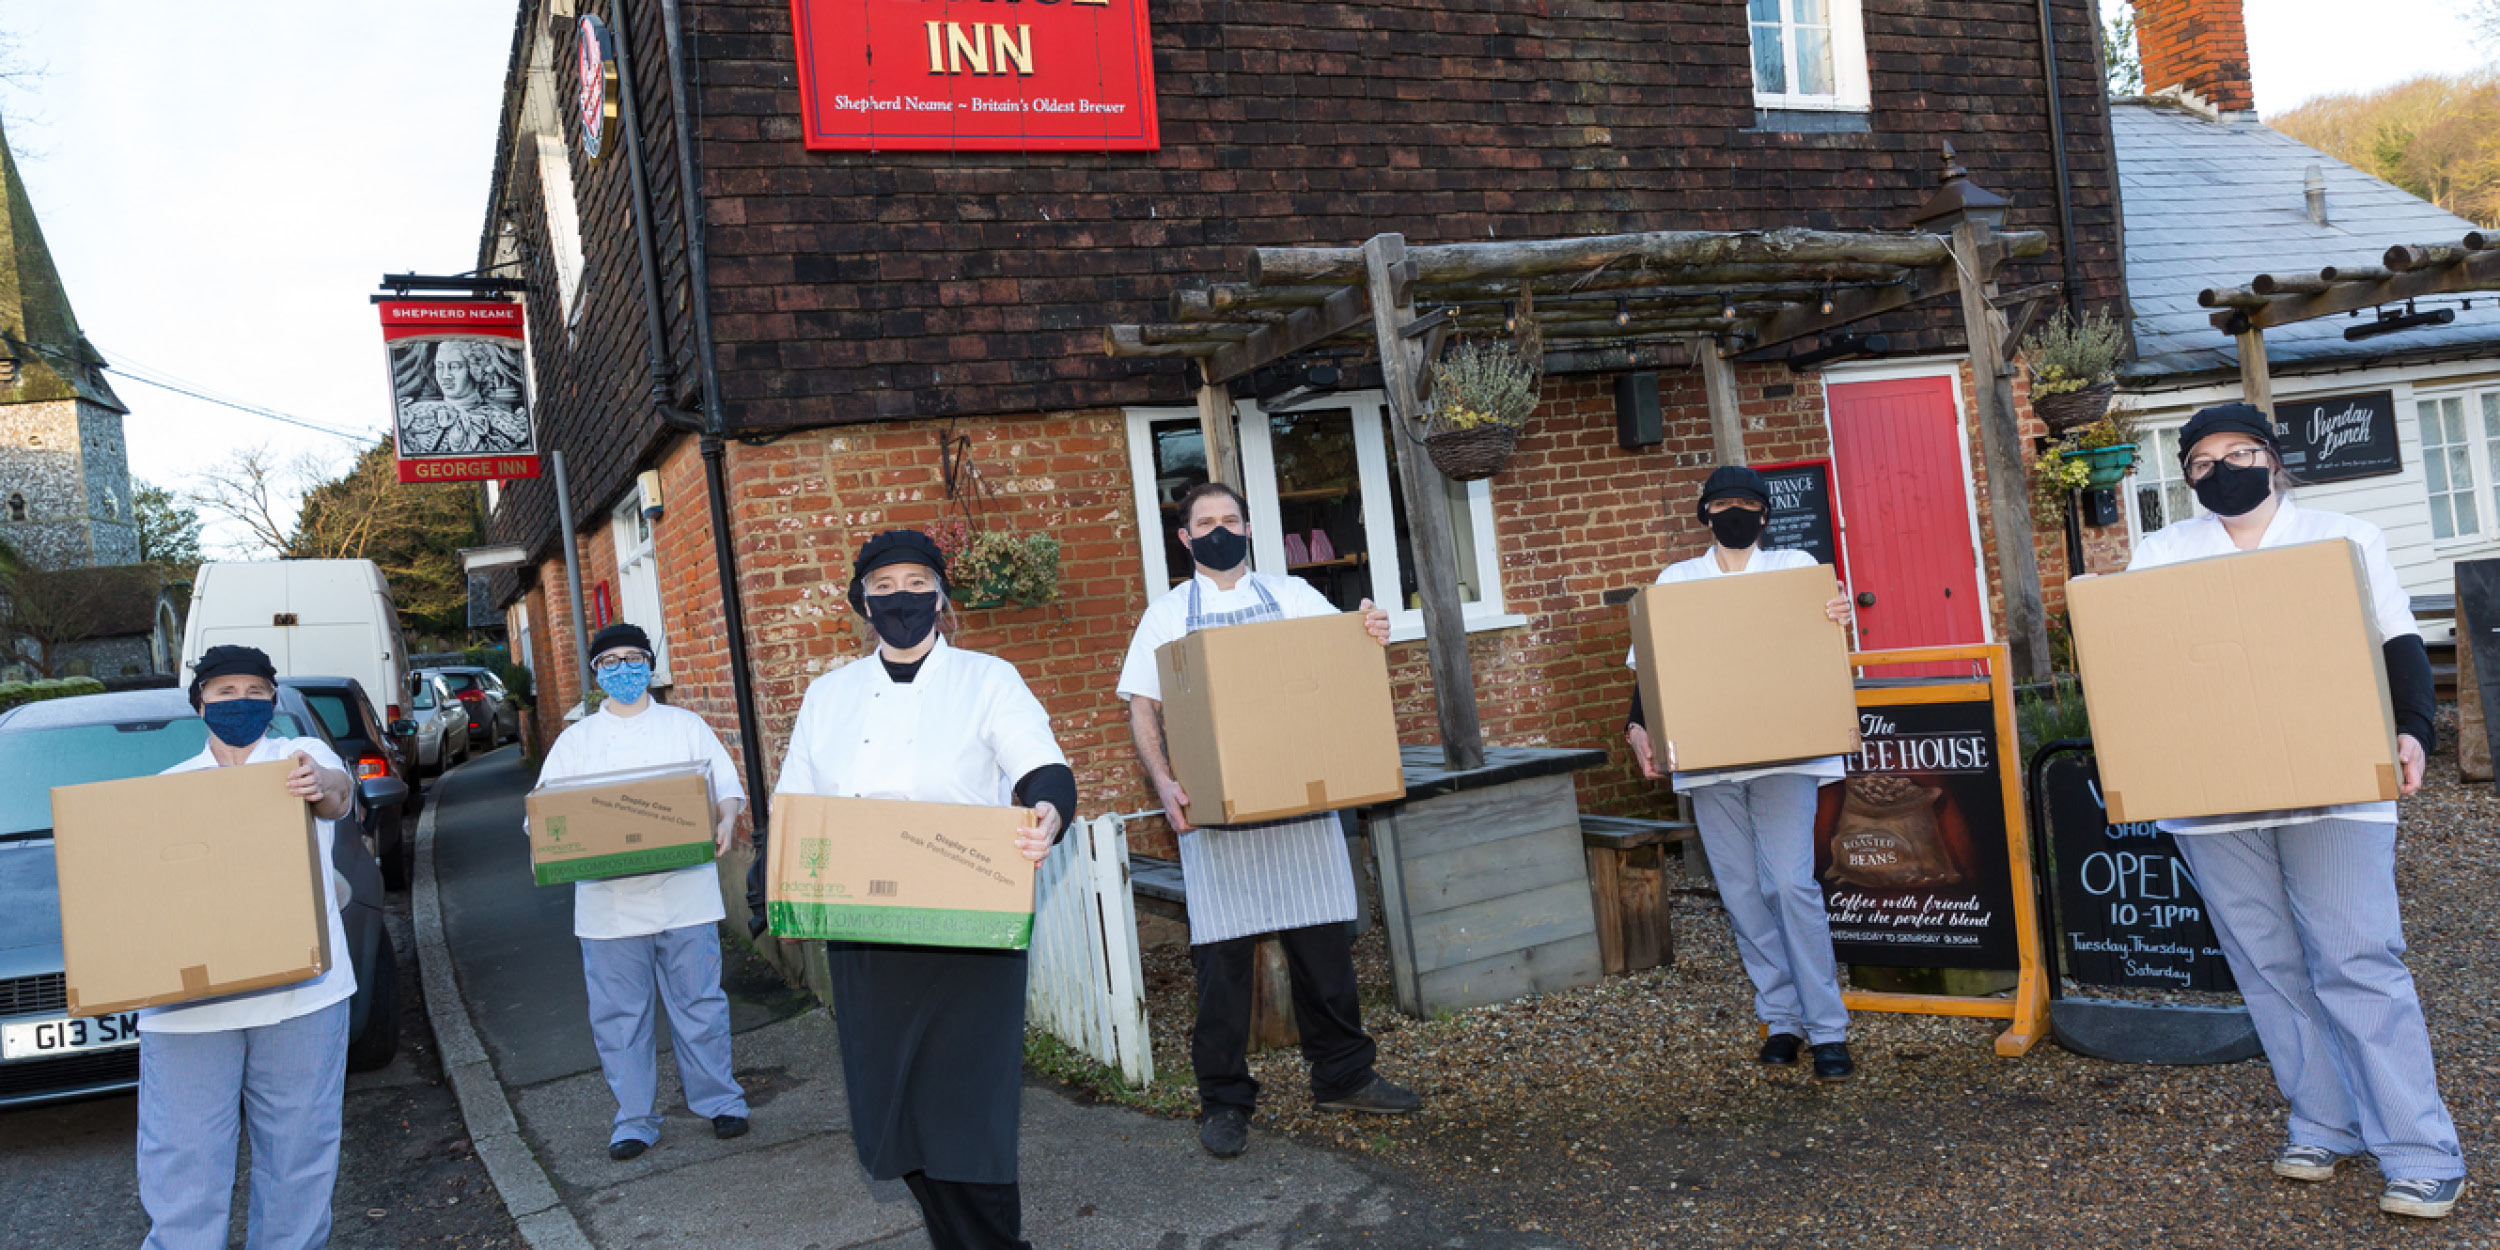 Pub cooks 5,000 meals for NHS teams